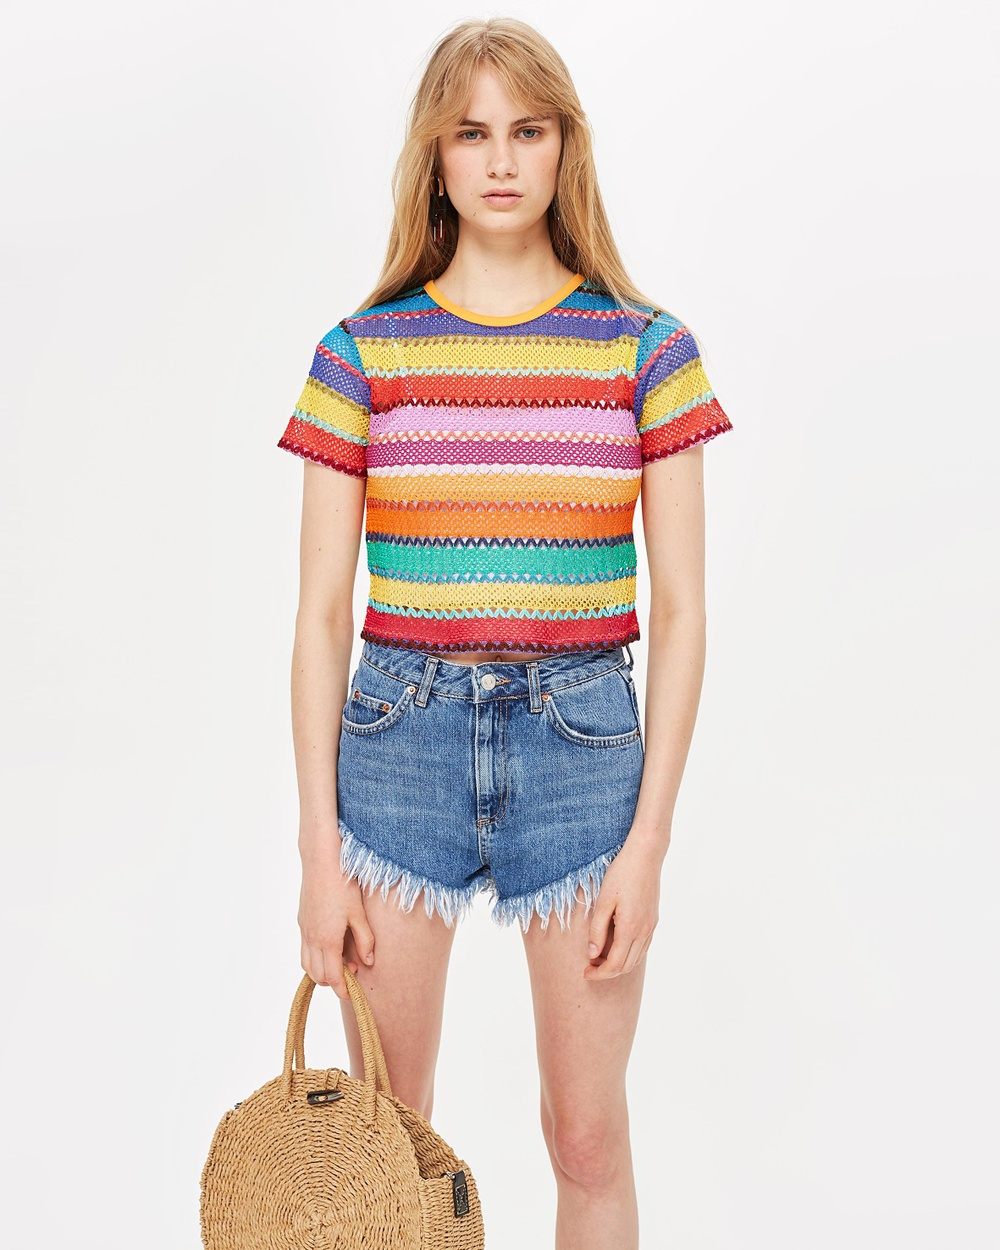 TOPSHOP Bright Crochet T Shirt Cropped tops Multi Bright Crochet T-Shirt